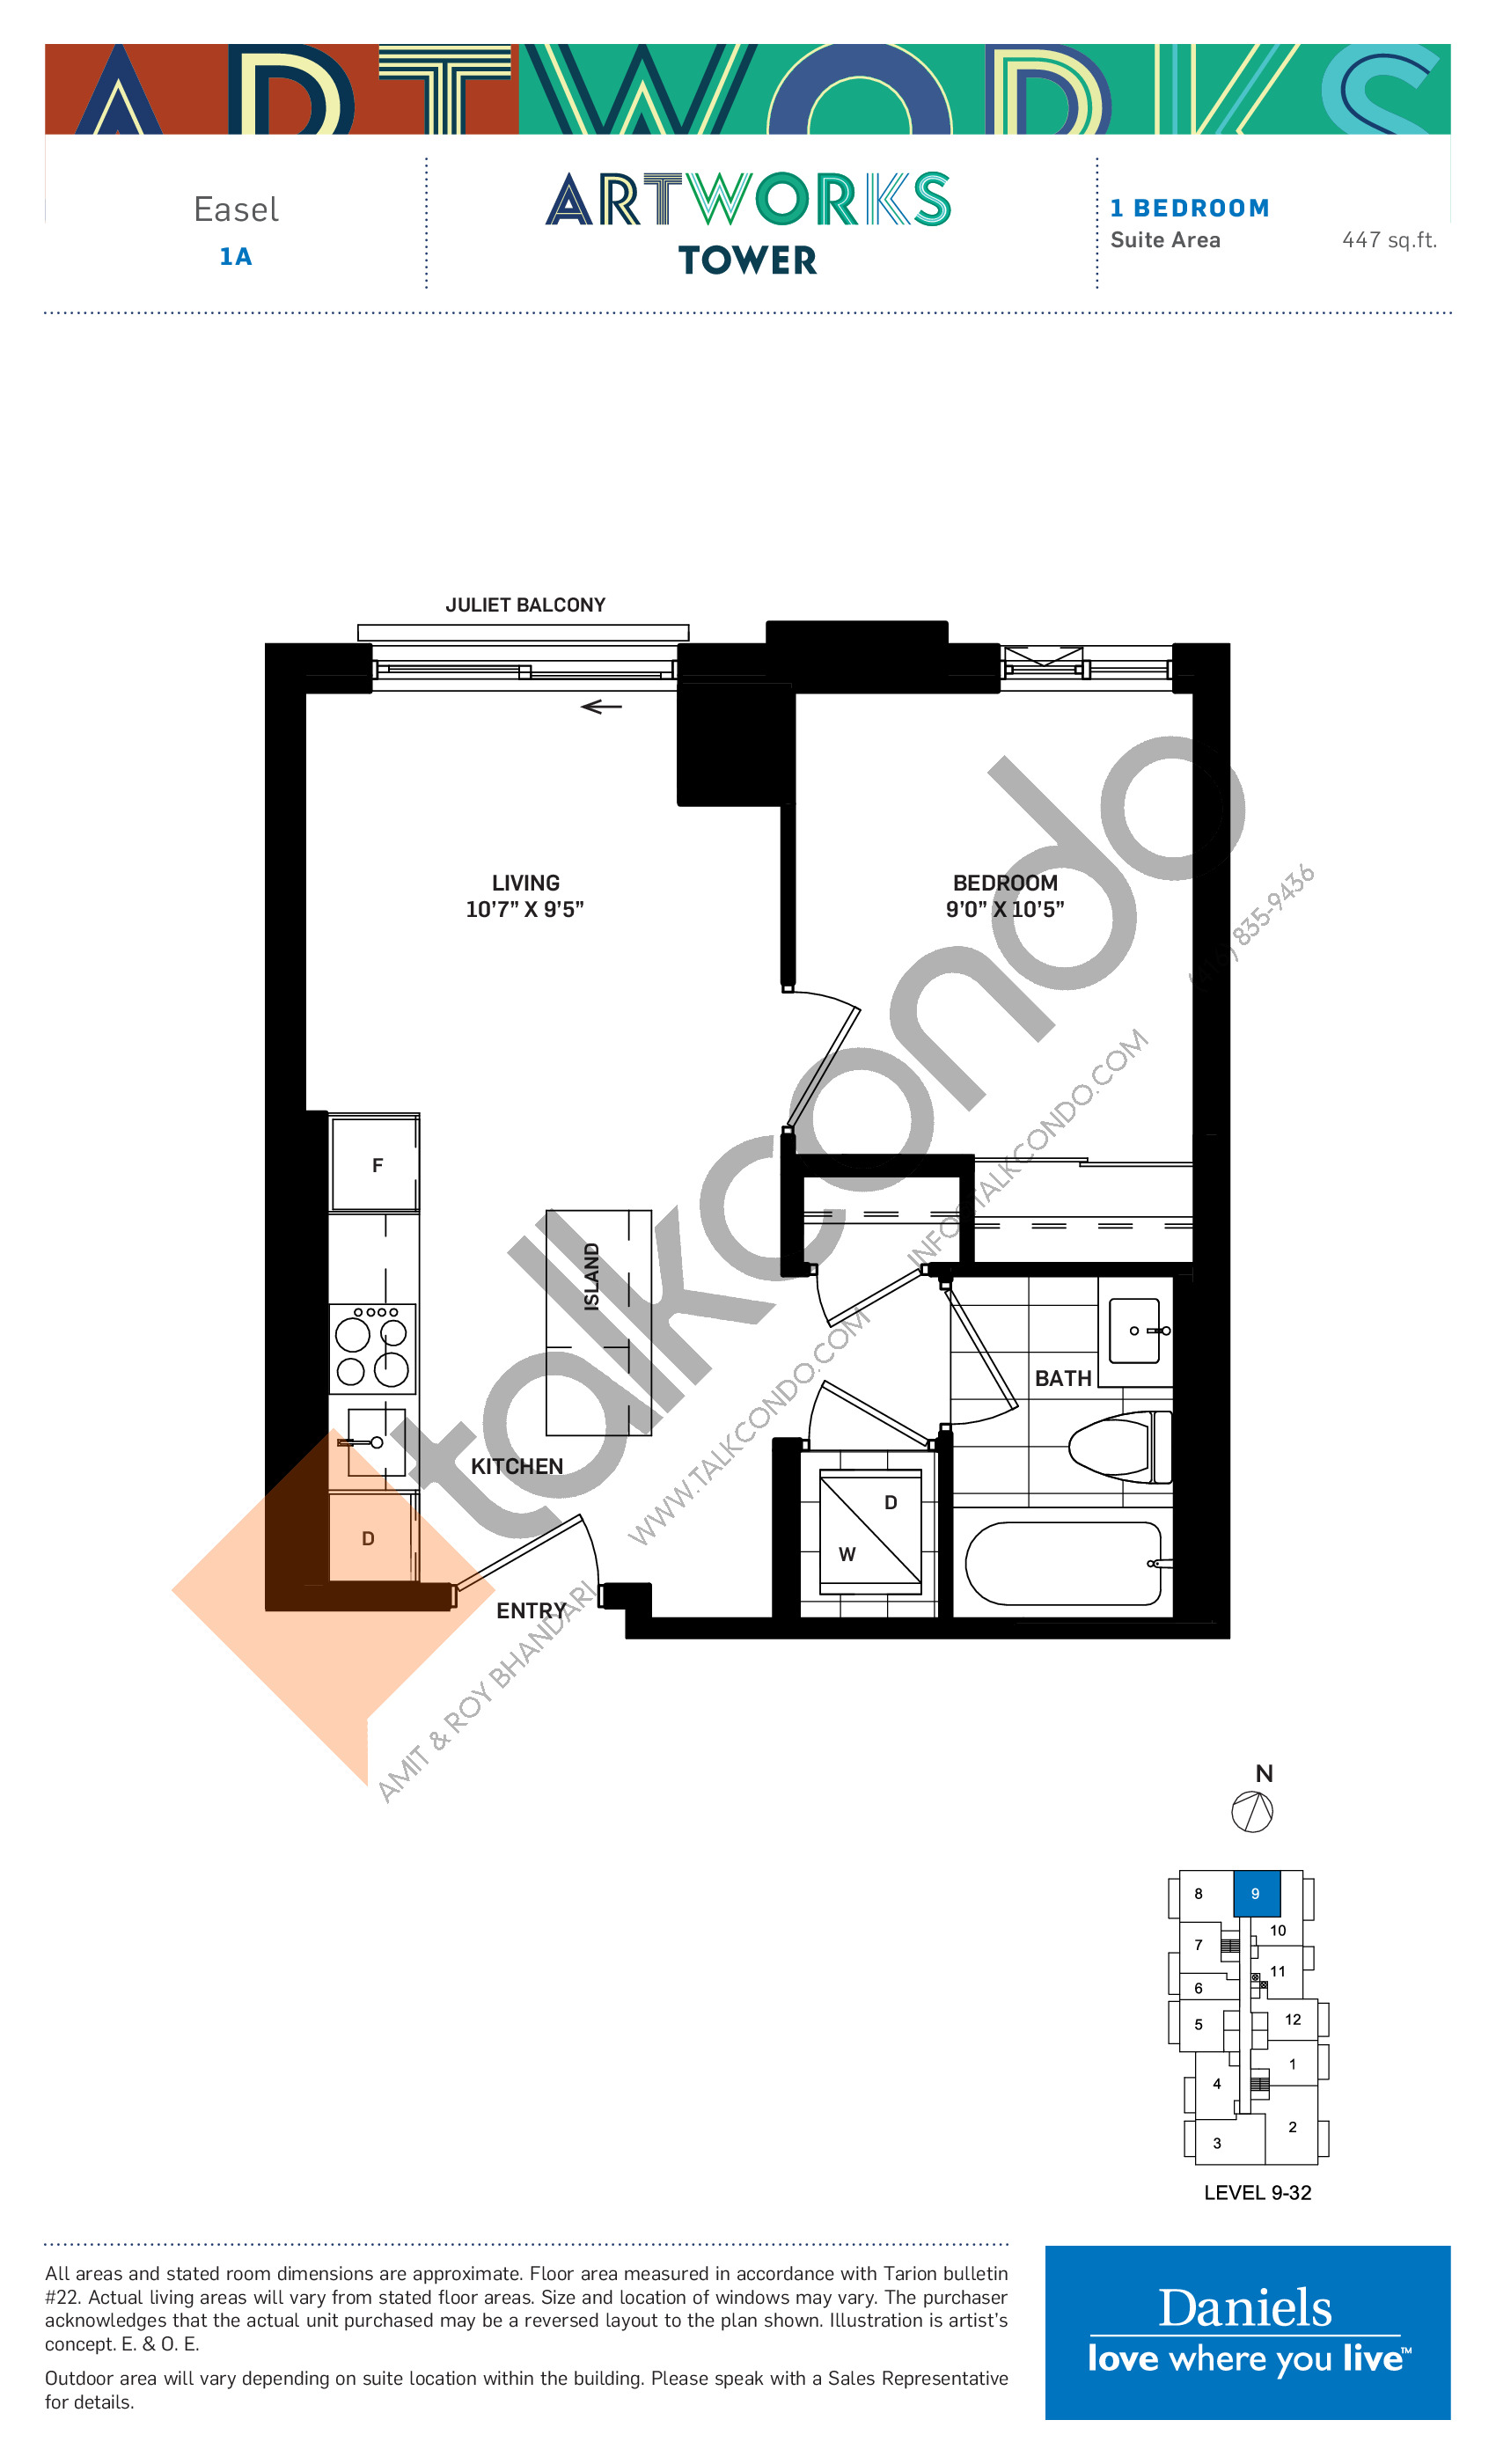 Easel Floor Plan at Artworks Tower Condos - 447 sq.ft